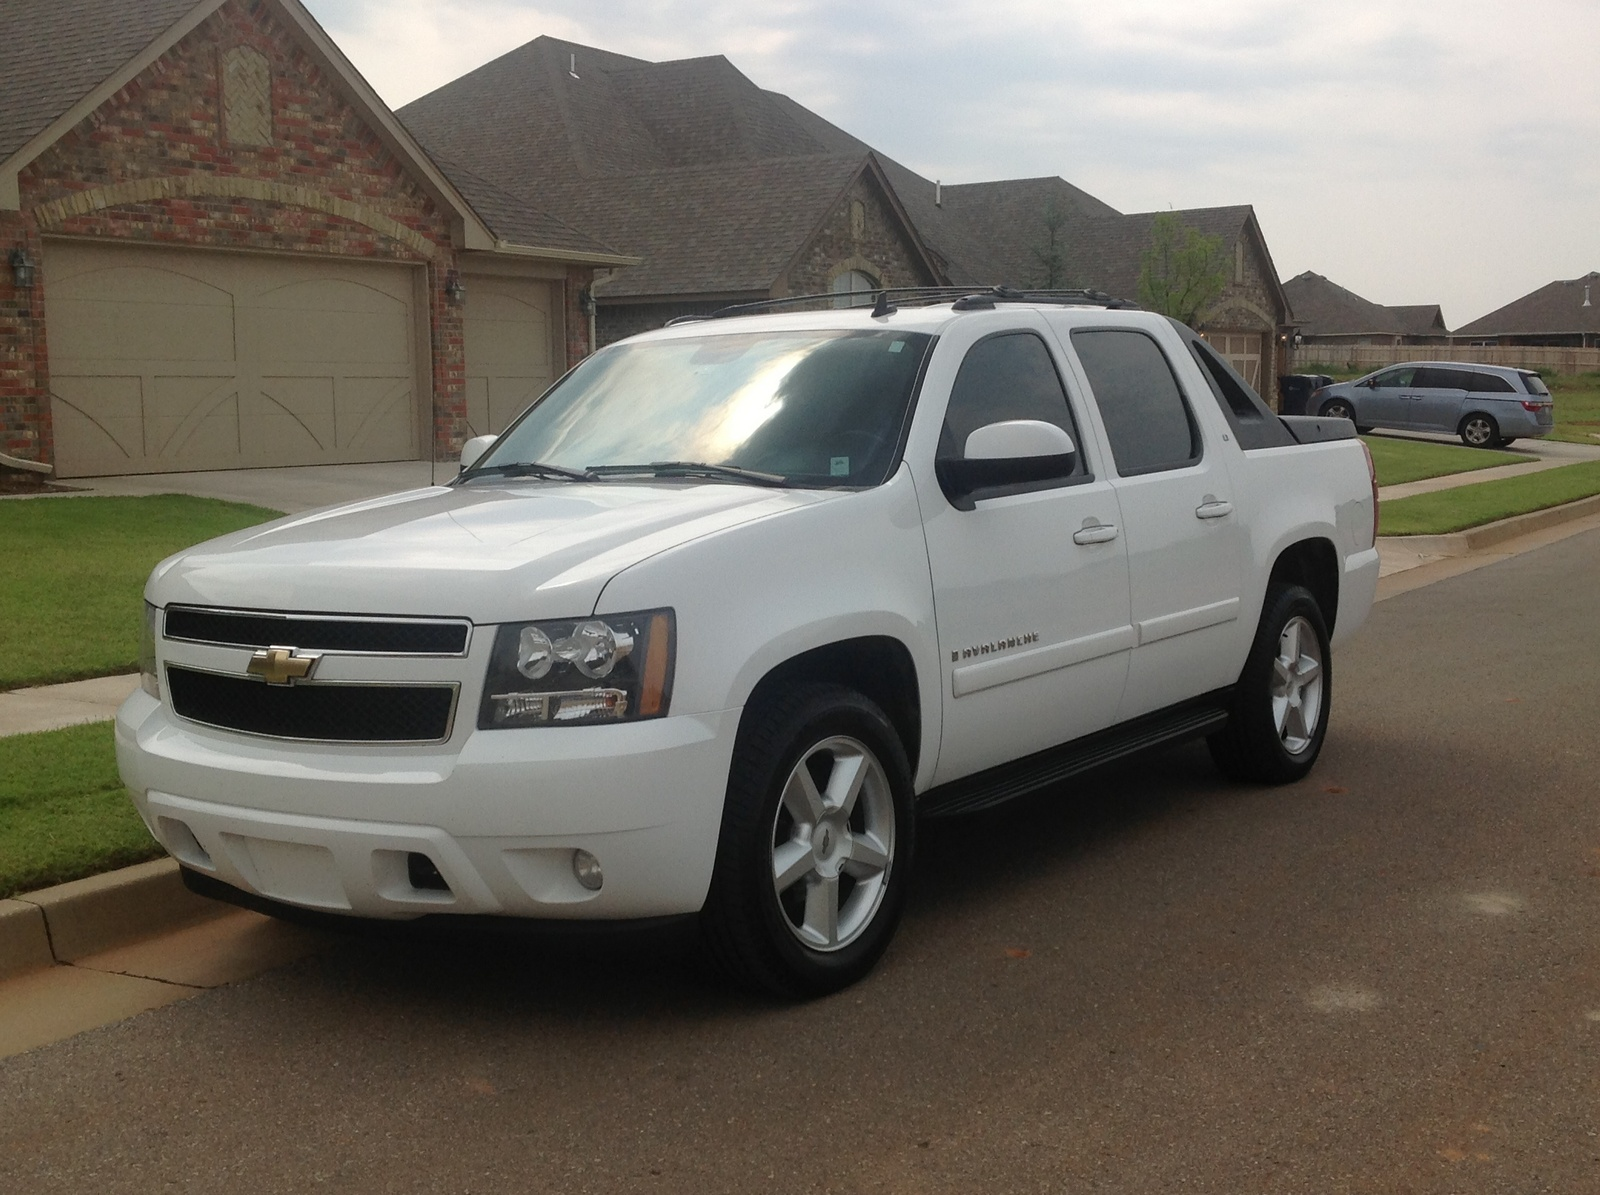 2008 chevrolet avalanche pictures cargurus. Black Bedroom Furniture Sets. Home Design Ideas